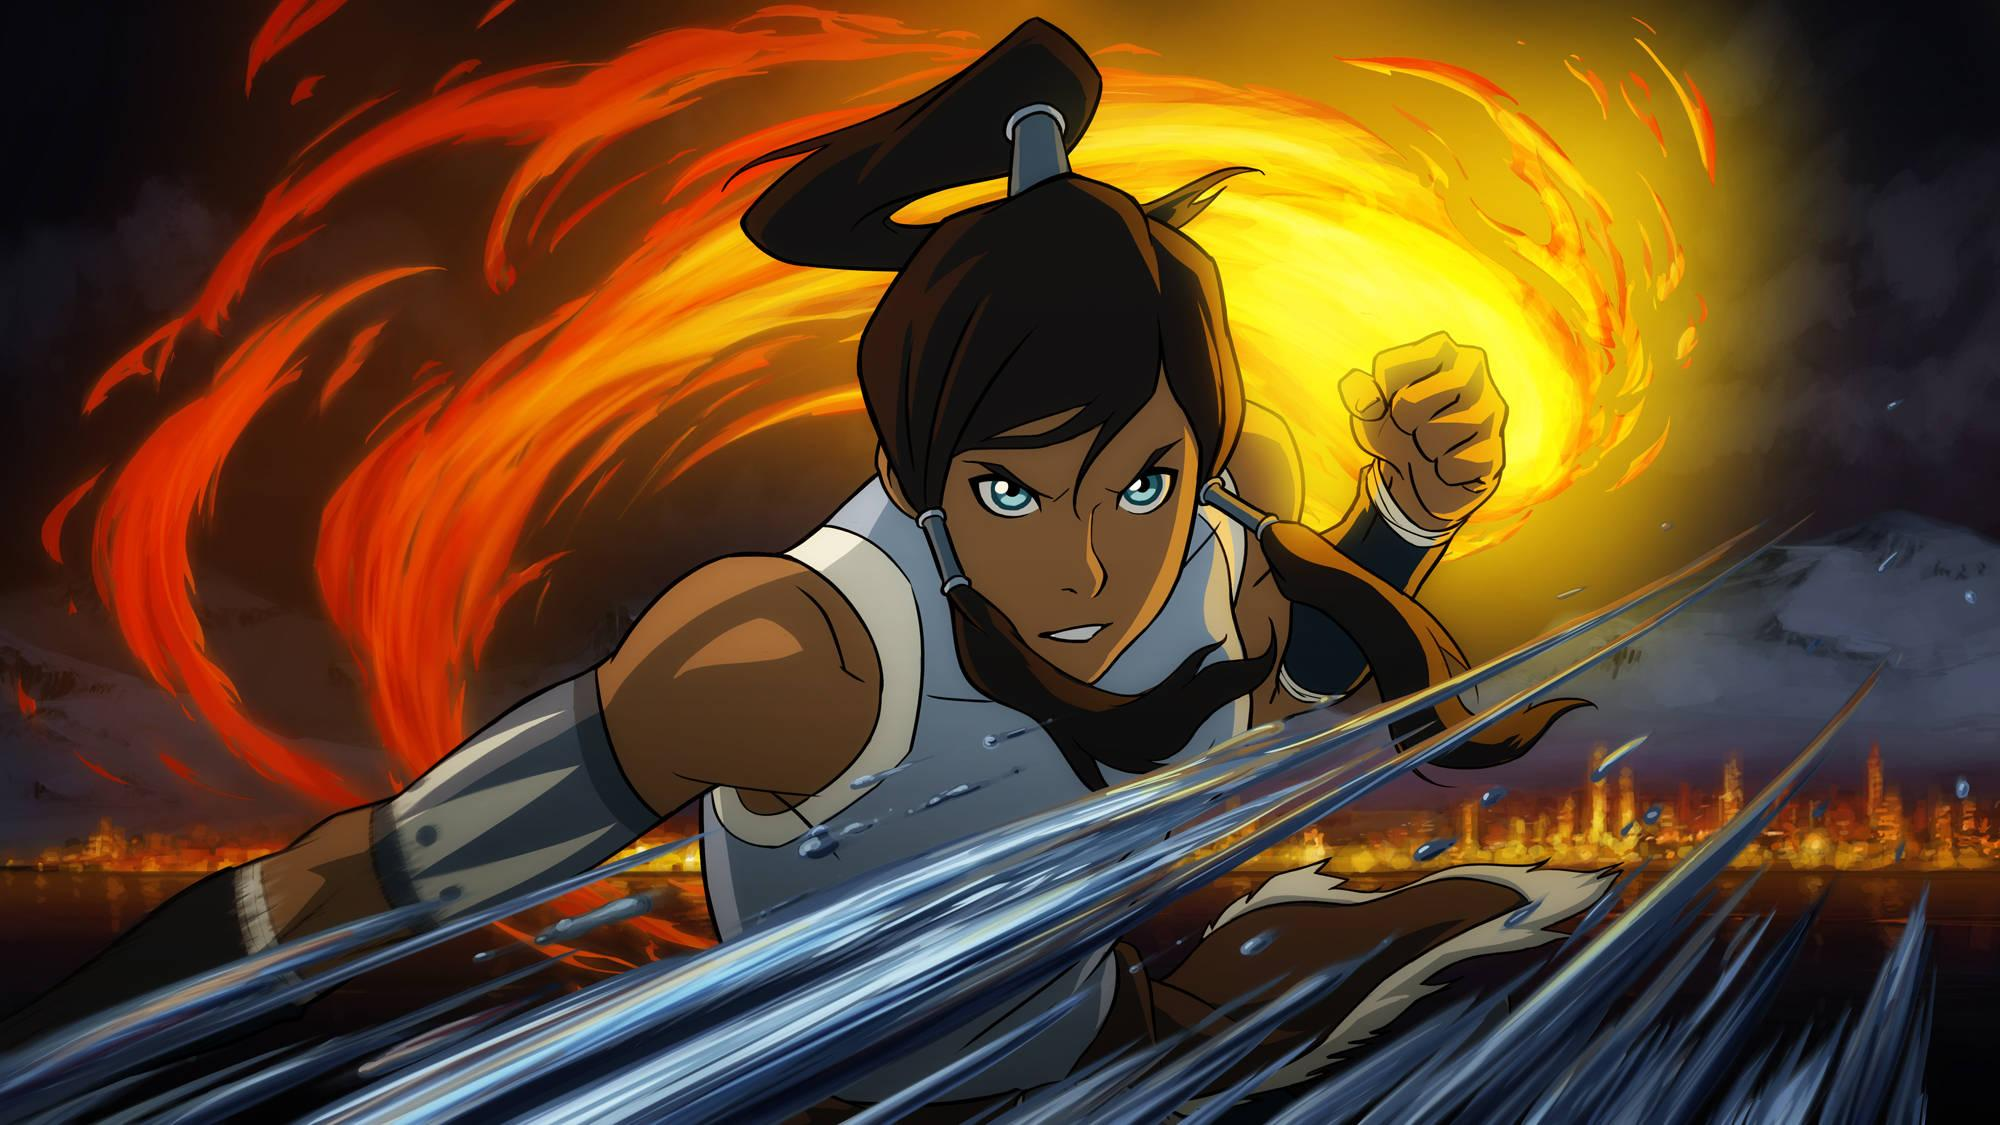 Pictured: Korra demonstrates fire and waterbending in THE LEGEND OF KORRA on Nickelodeon. Photo: Nickelodeon. ©2012 Viacom, International, Inc. All Rights Reserved